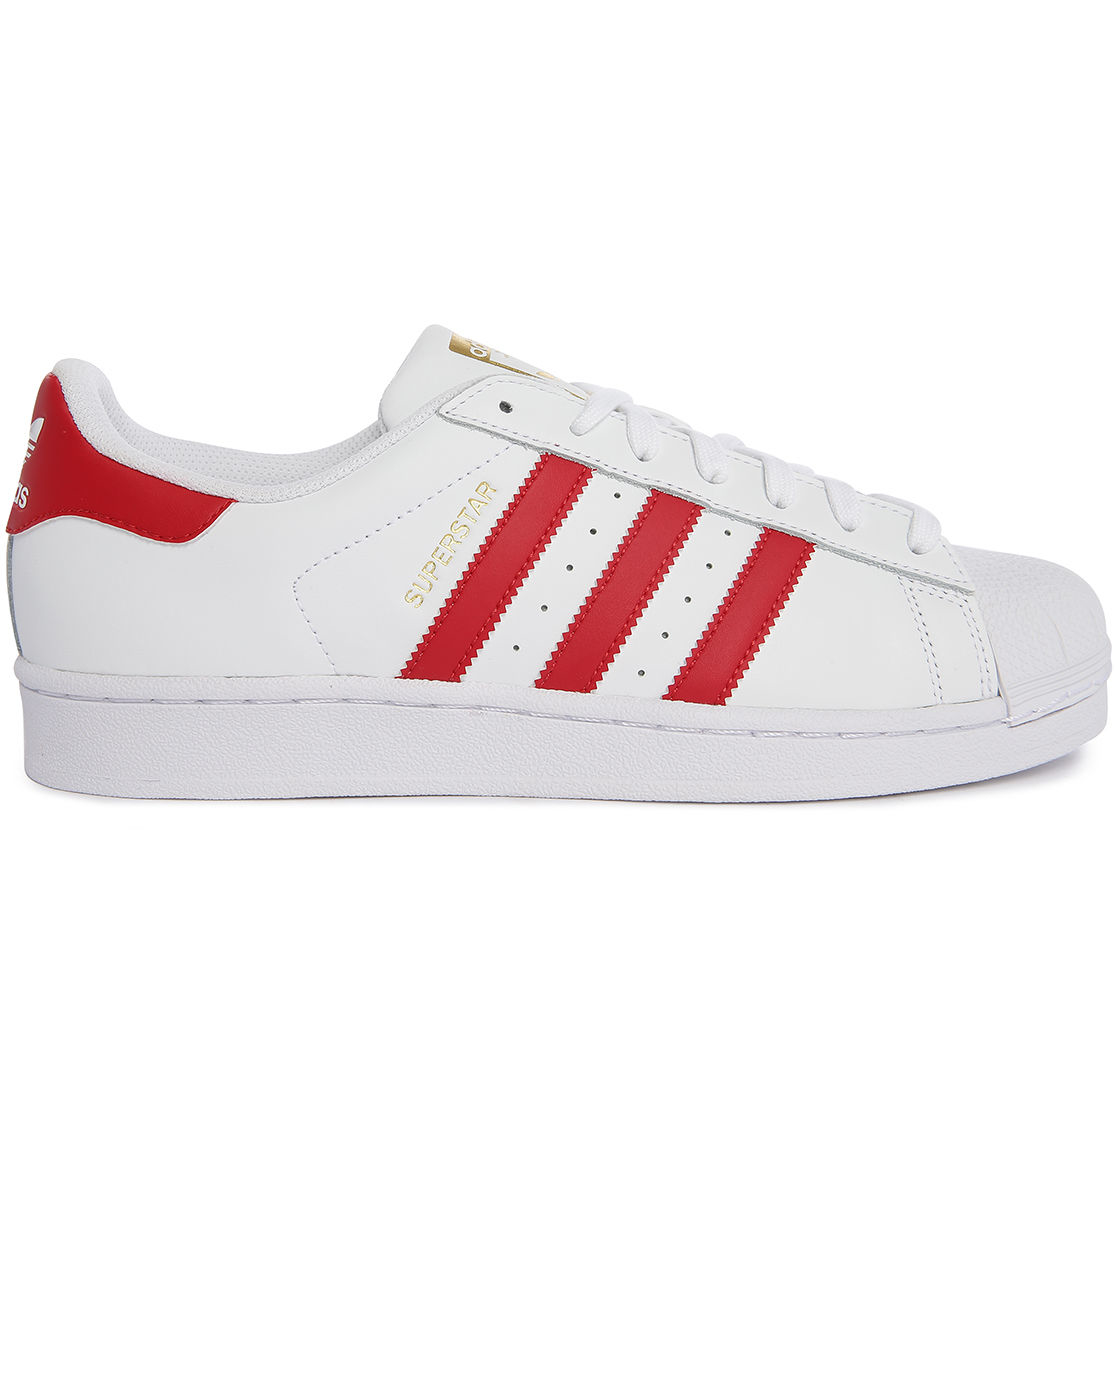 adidas shoes red stripes